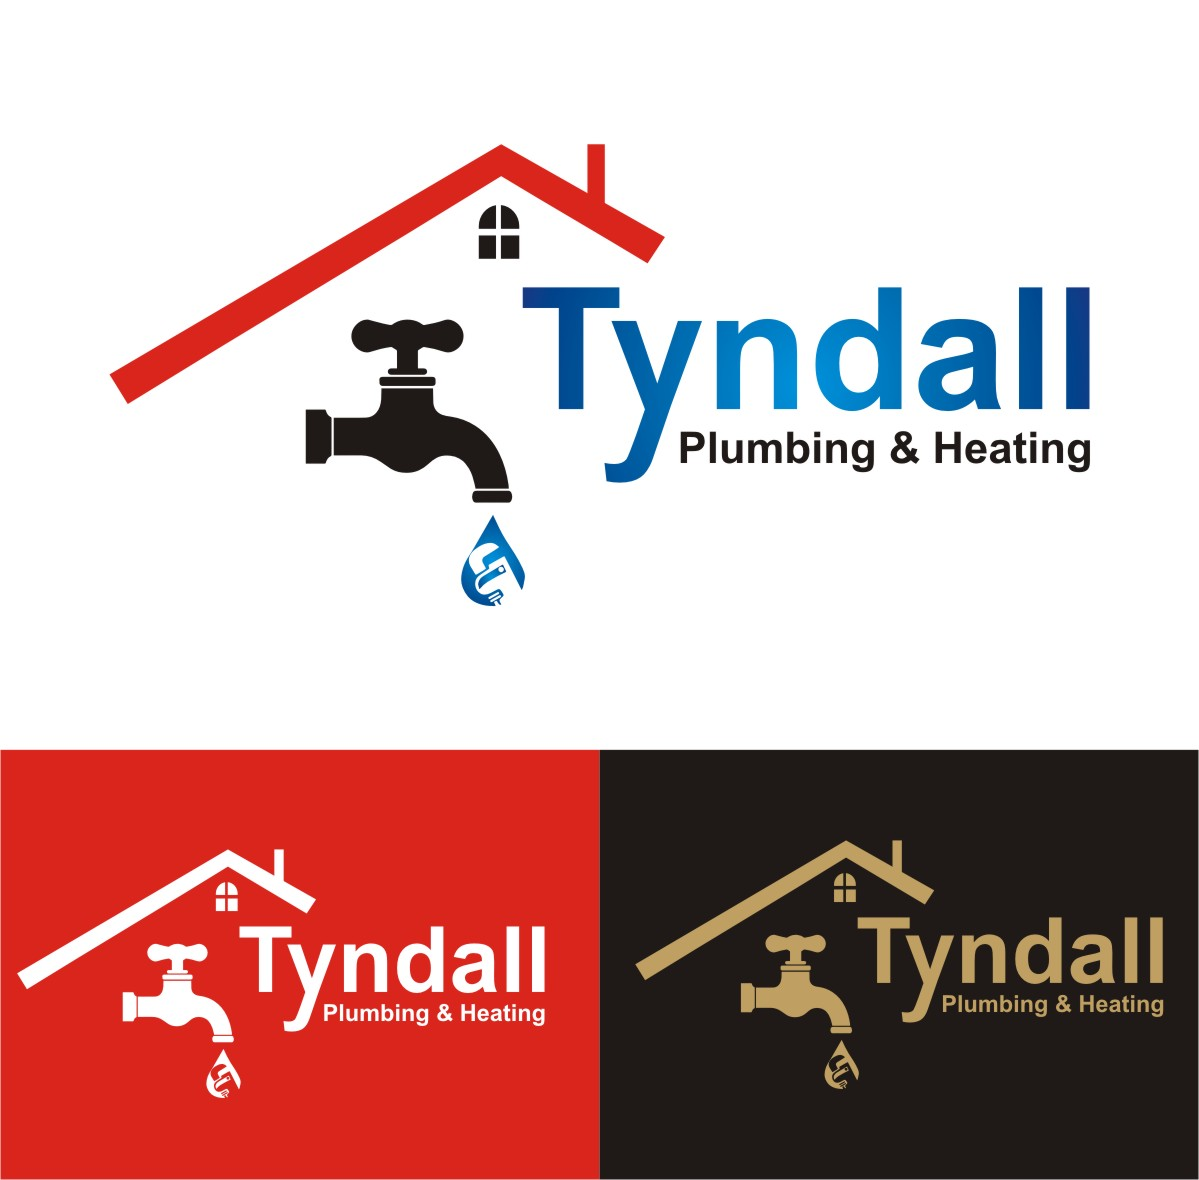 Logo Design by Spider Graphics - Entry No. 148 in the Logo Design Contest Imaginative Logo Design for Tyndall Plumbing & Heating.